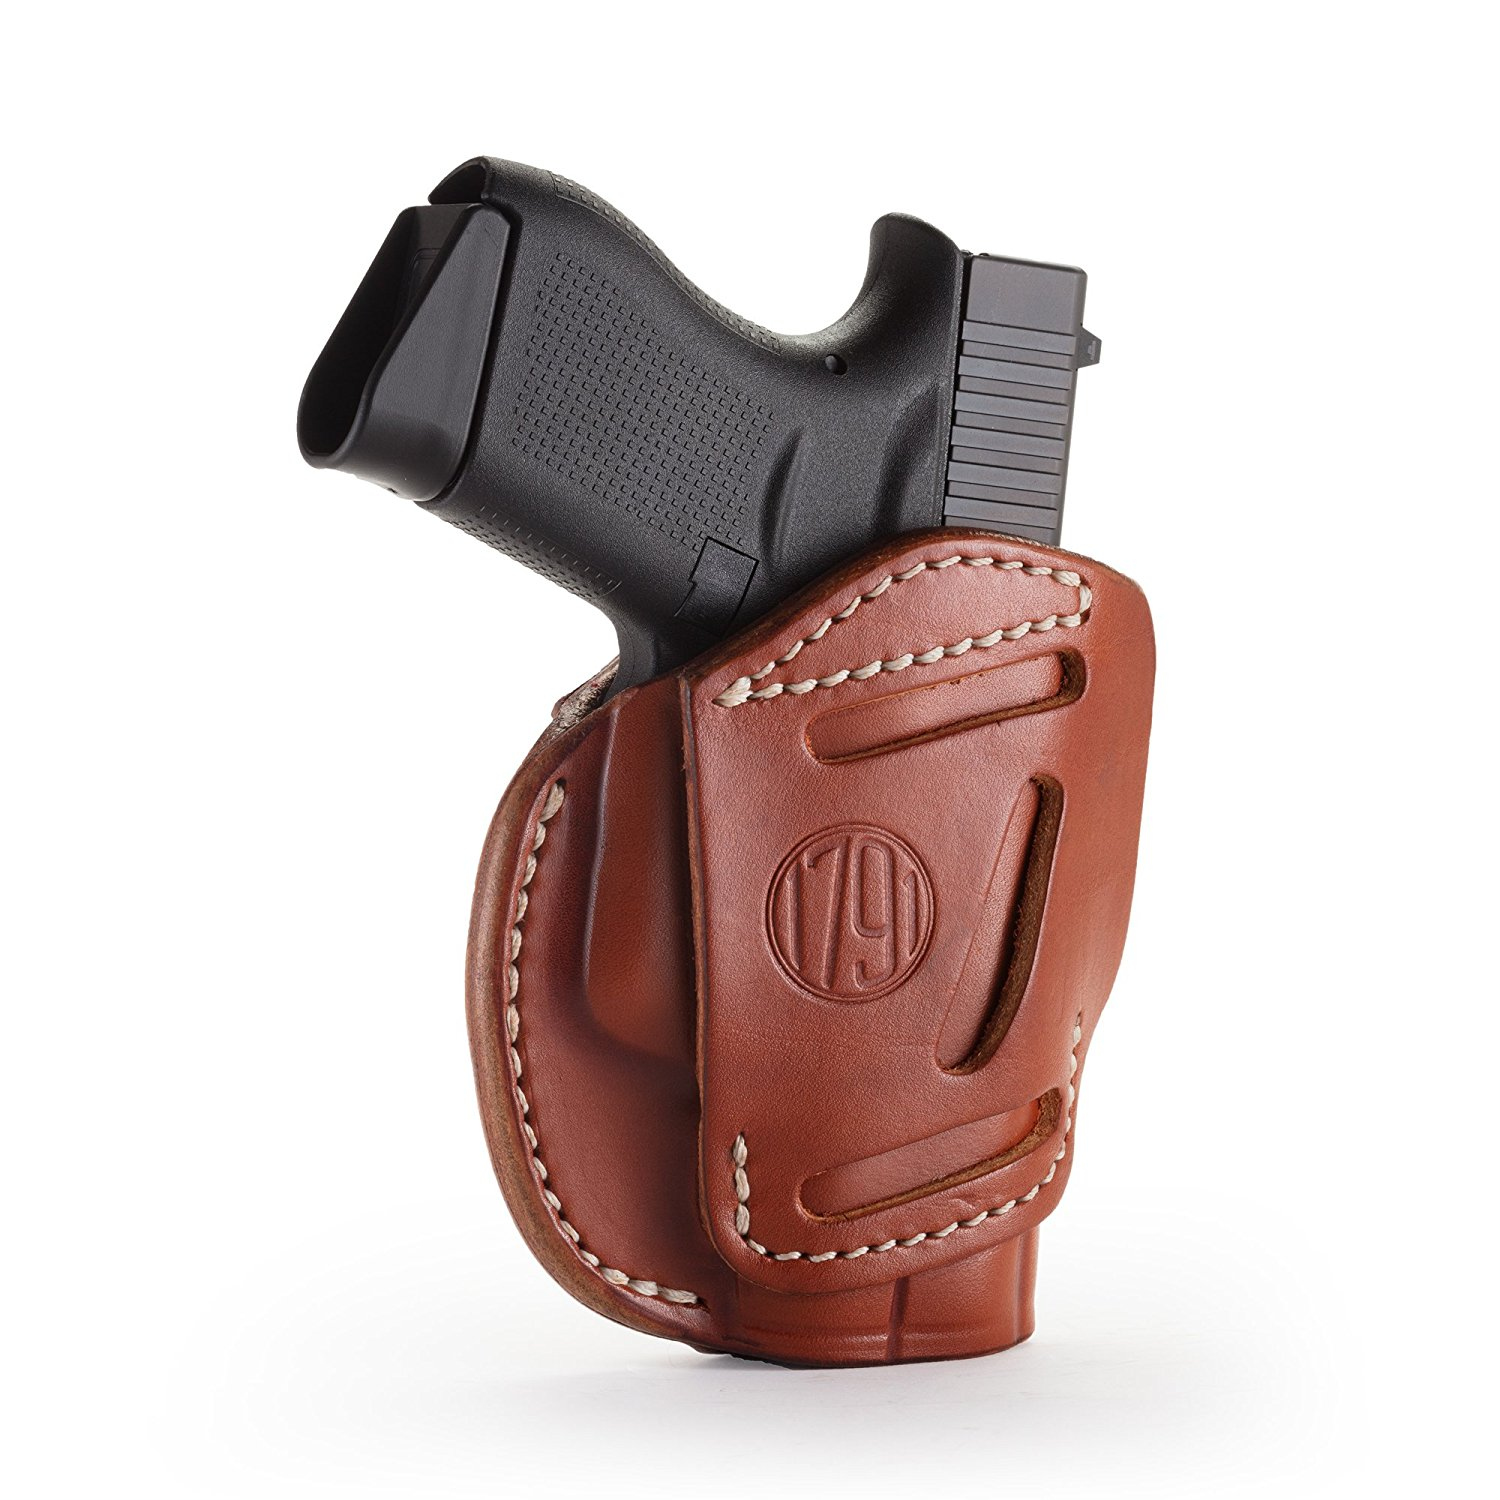 1791 GunLeather 3-WAY Glock 43 Holster - OWB CCW Holster Ambidextrous - Right & Left Handed Leather Gun Holster - Fits Glock 43, Glock 42, Kahr CW380 and S&W Bodyguard (3WAY SIZE 2)